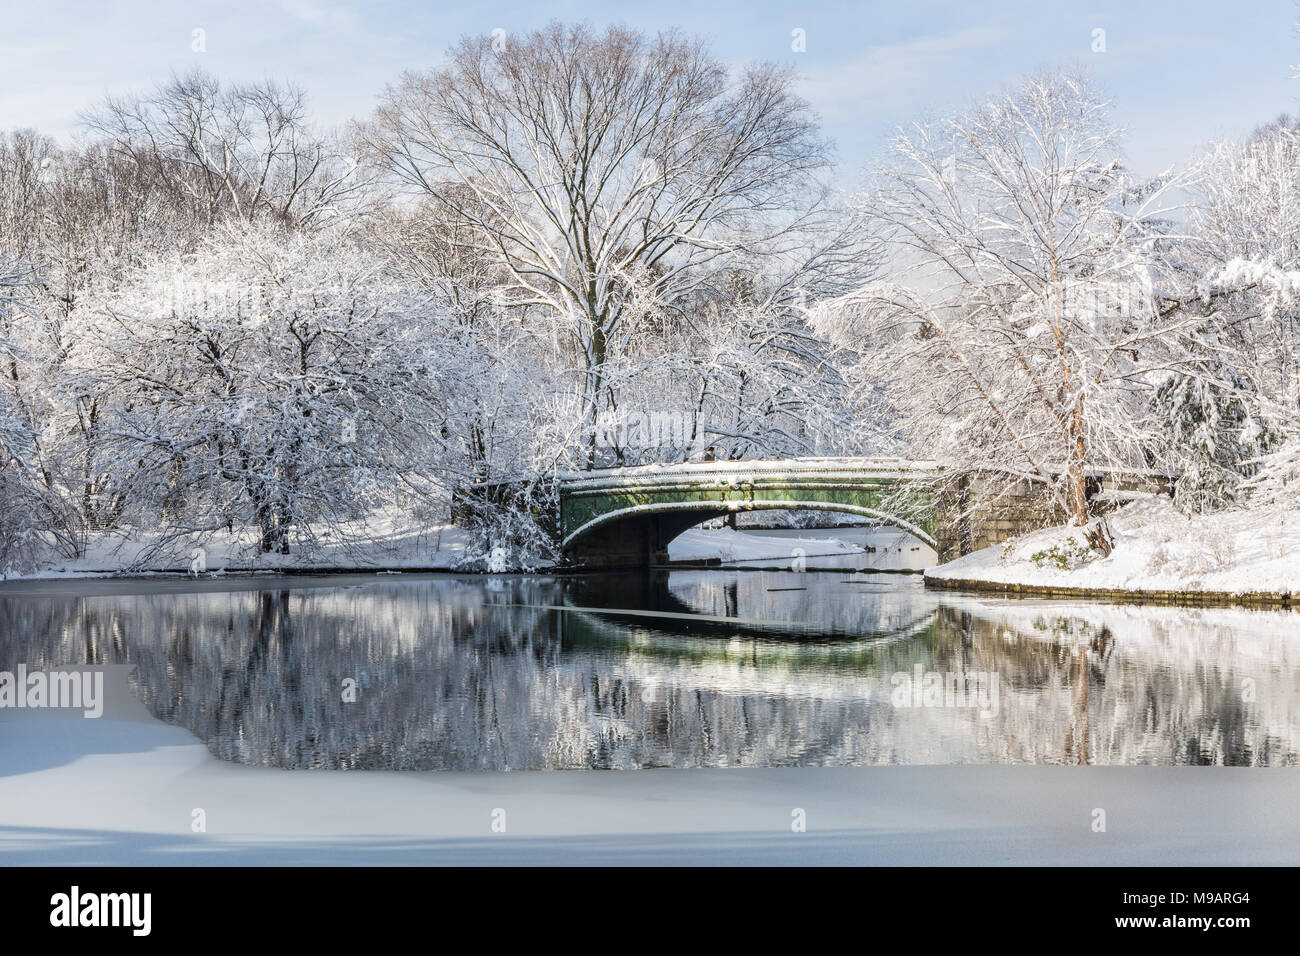 The Lullwater Bridge on Prospect Park Lake after a record SPring snowfall in Prospect Park, Brooklyn, New York. Stock Photo